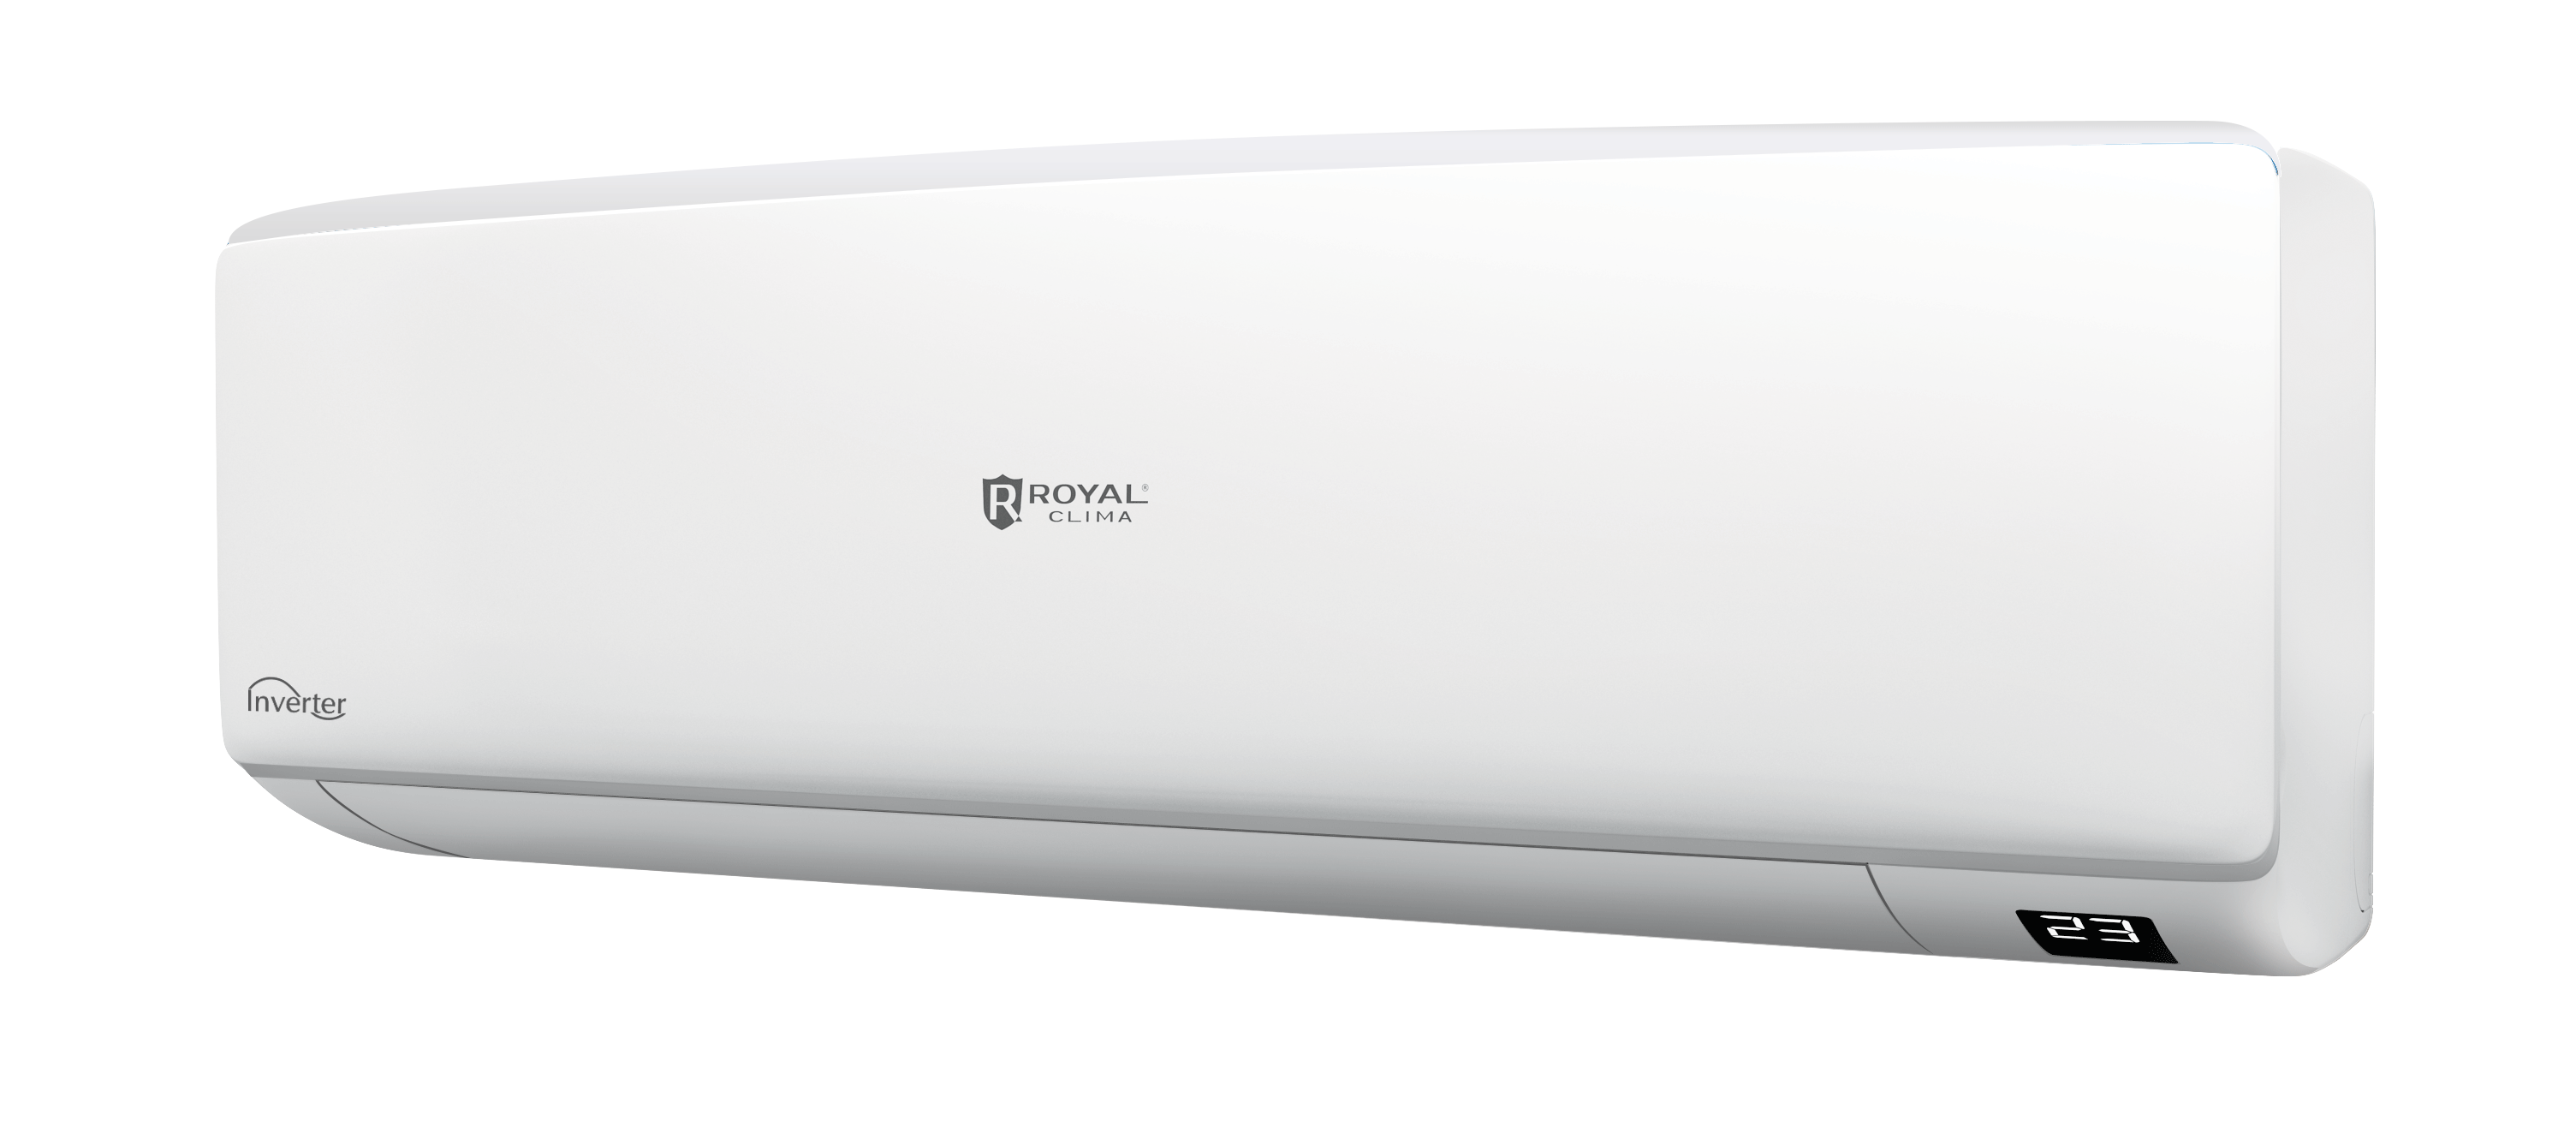 Кондиционер настенный Royal Clima ENIGMA Plus Inverter RCI-E28HN